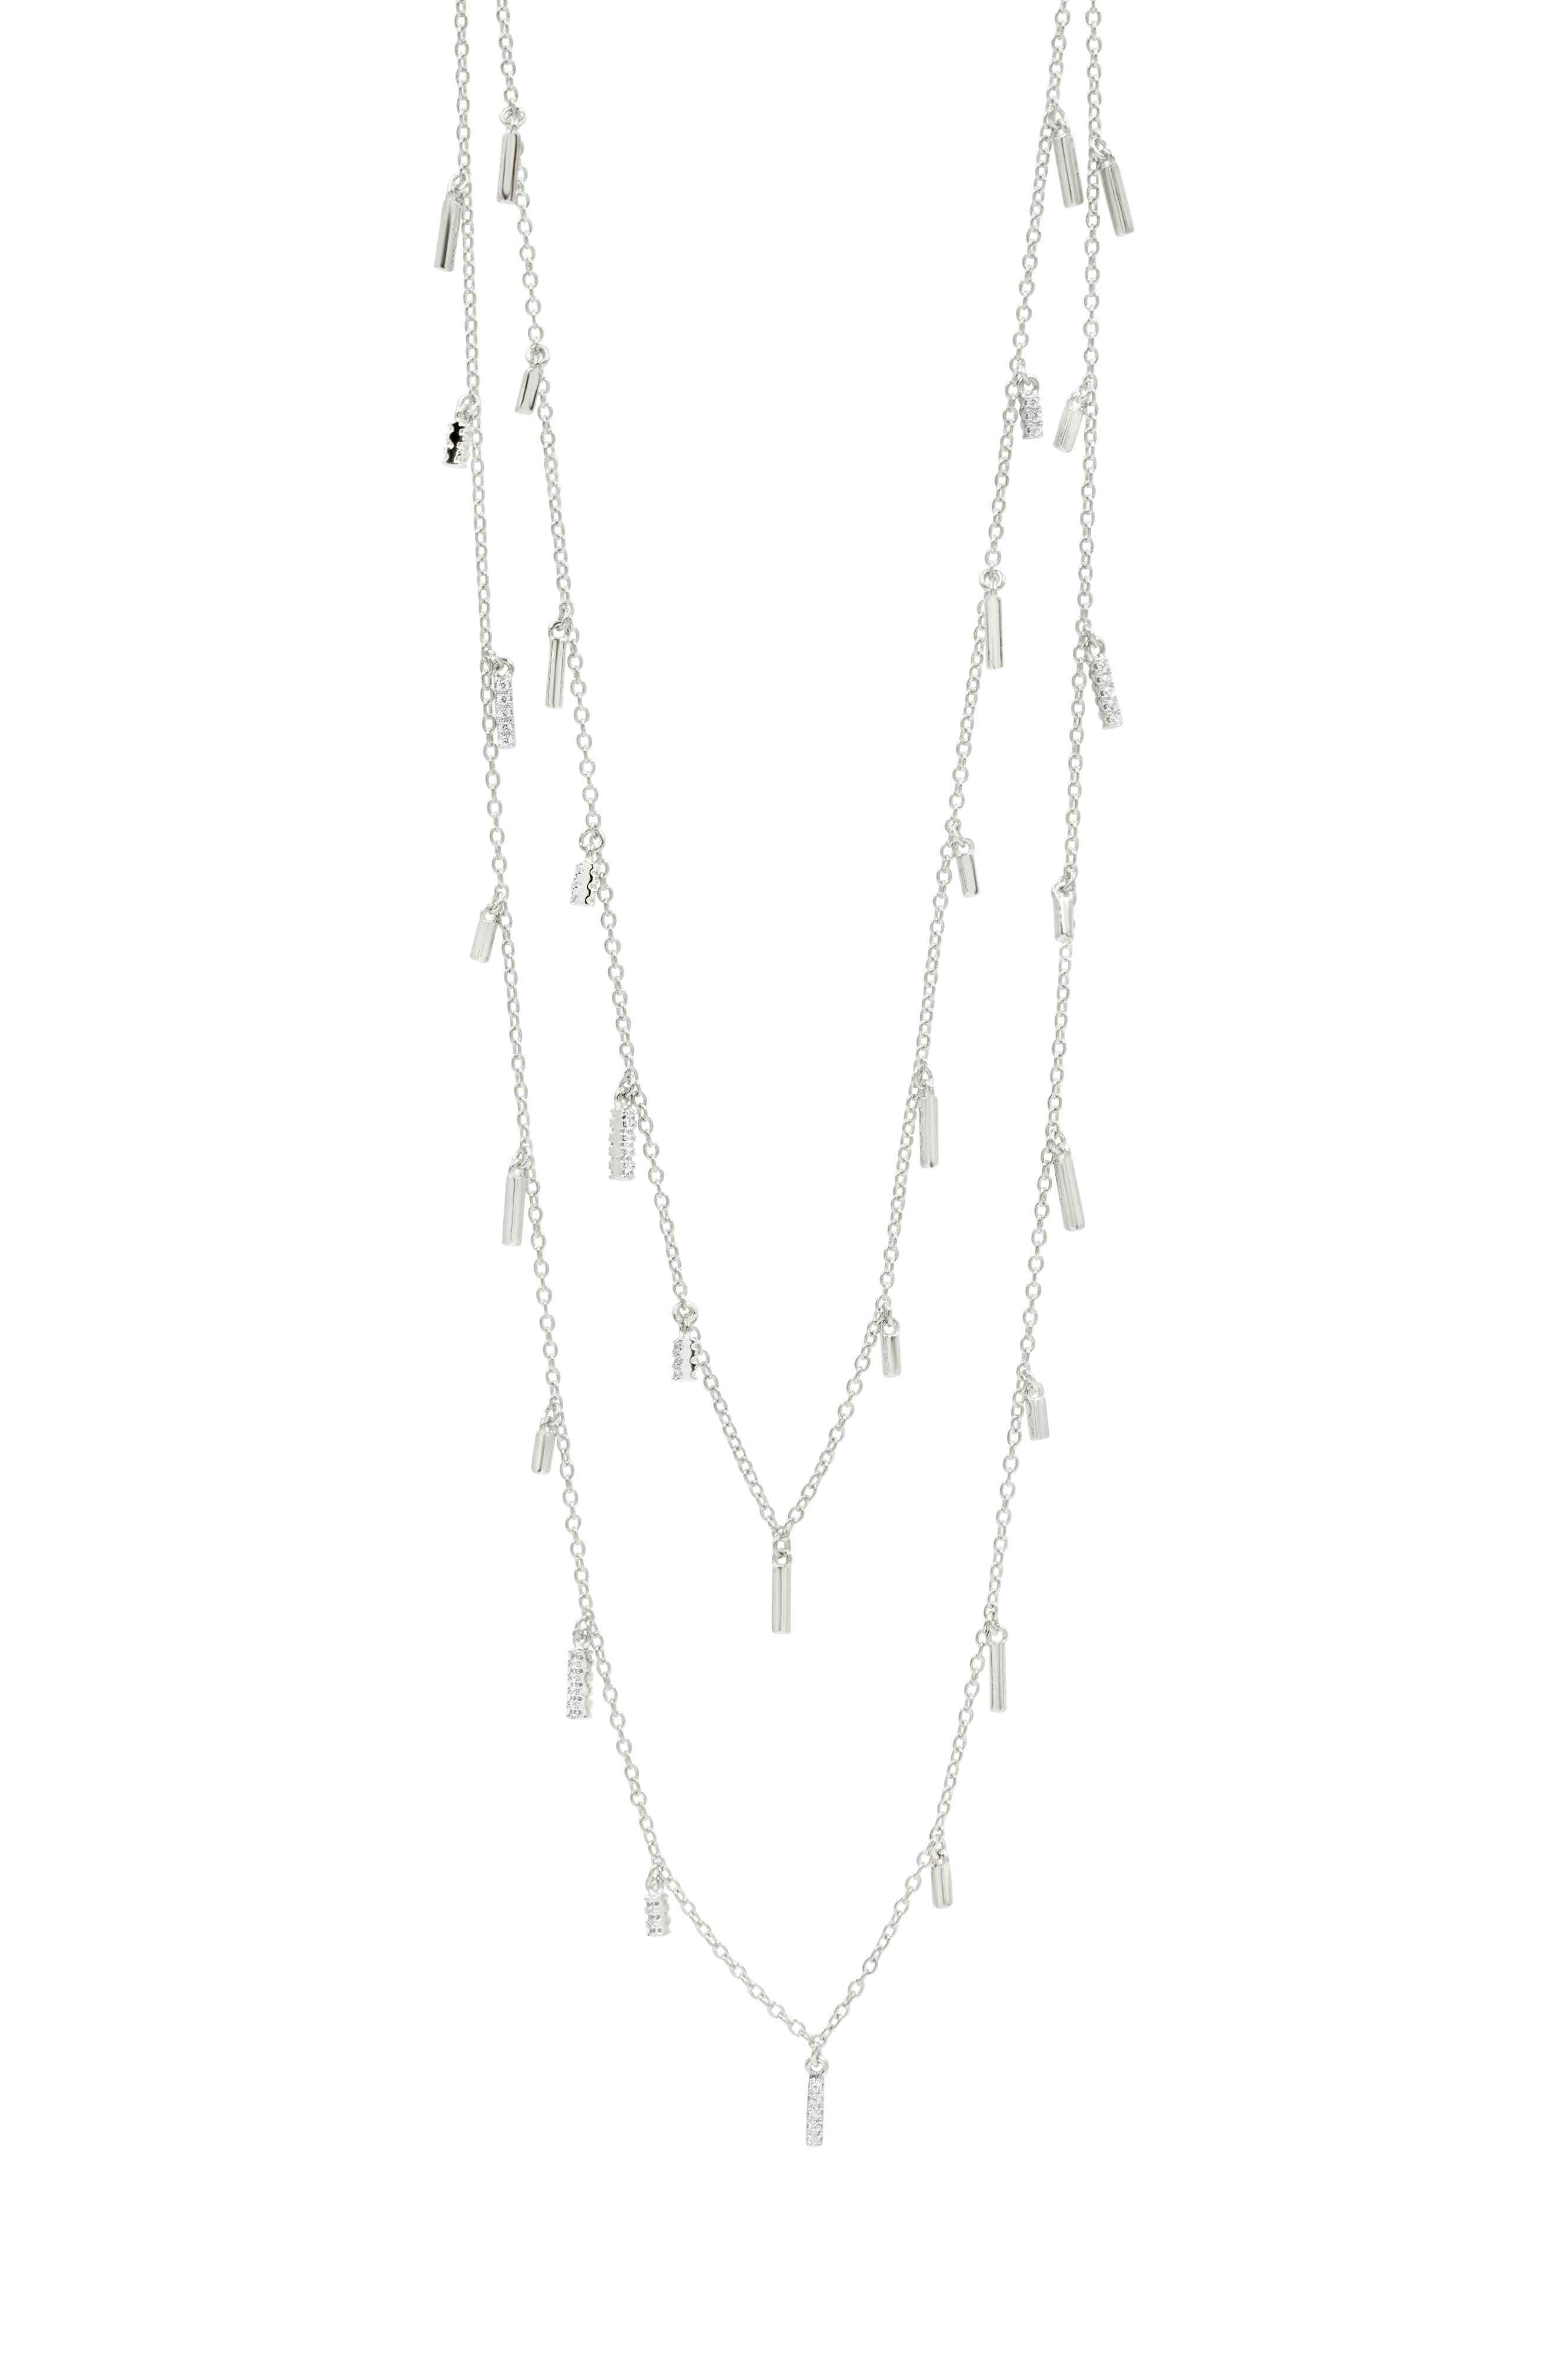 Radiance Multistrand Necklace,                             Alternate thumbnail 2, color,                             Silver